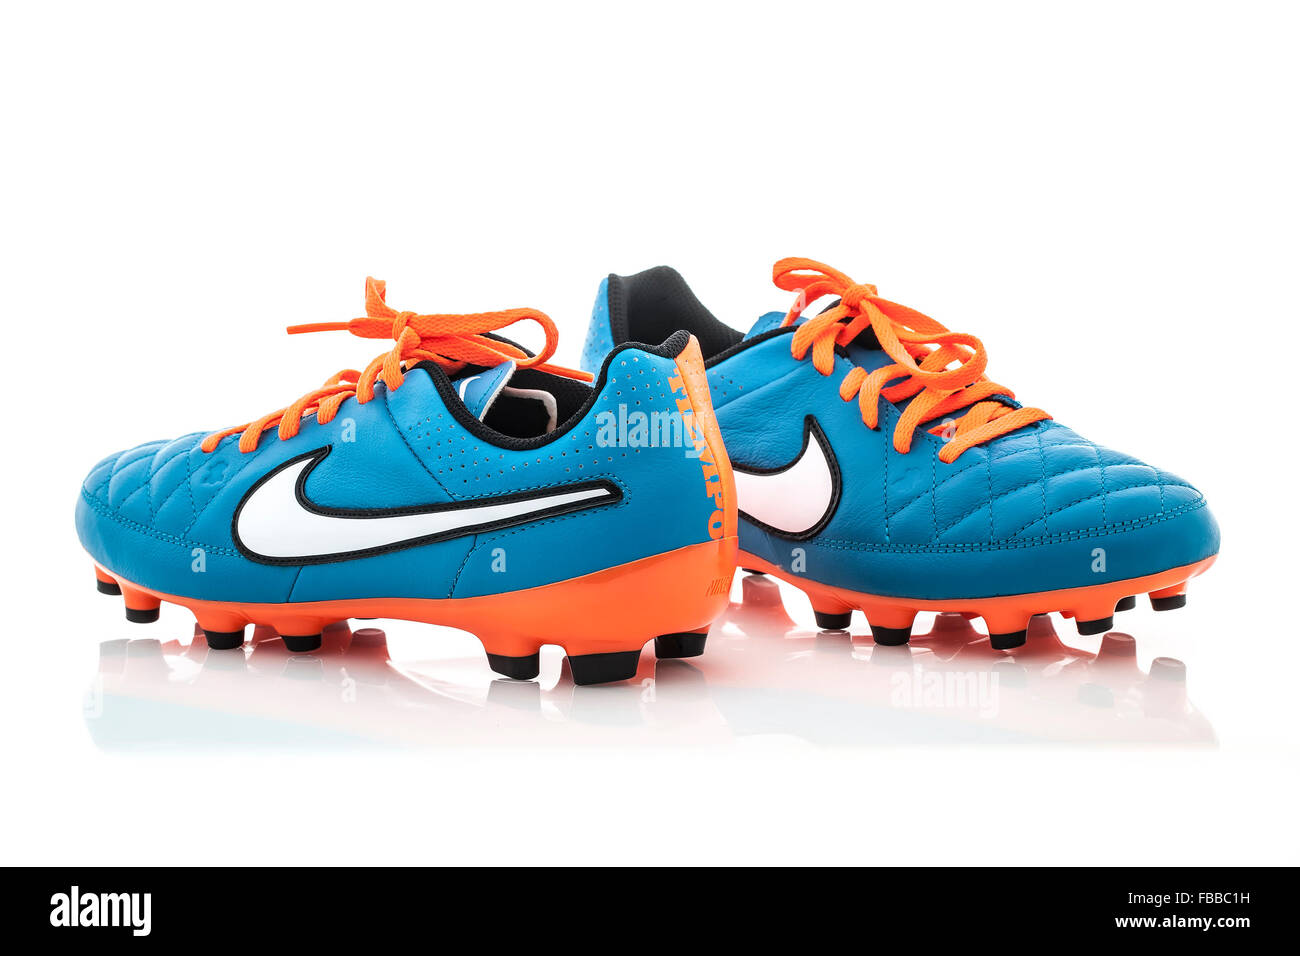 efe5f3798 Nike Football Boots Stock Photos   Nike Football Boots Stock Images ...